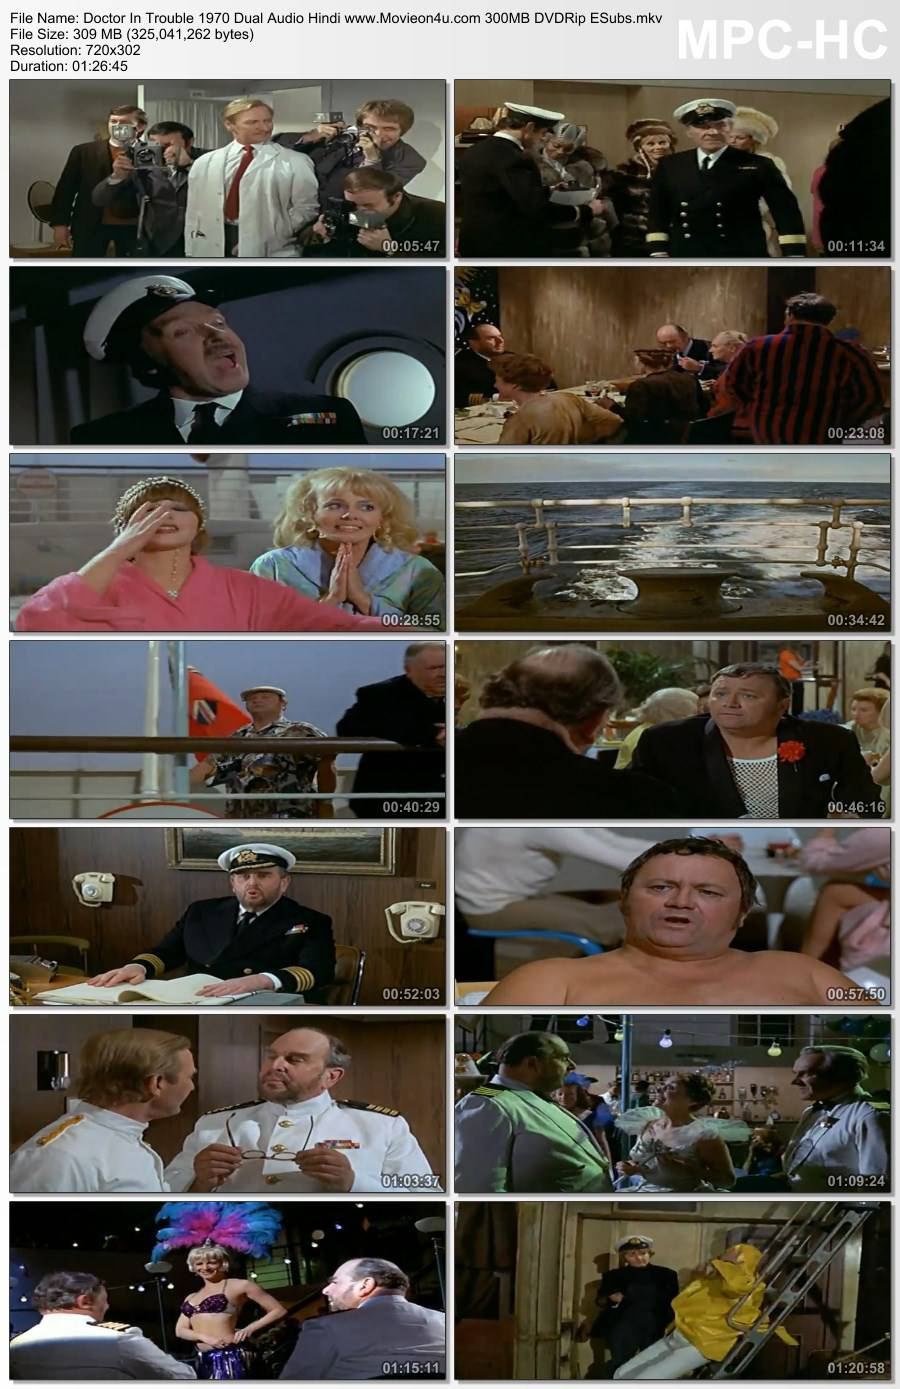 Doctor In Trouble 1970 Dual Audio Hindi 300MB DVDRip ESubs 480p Download HD